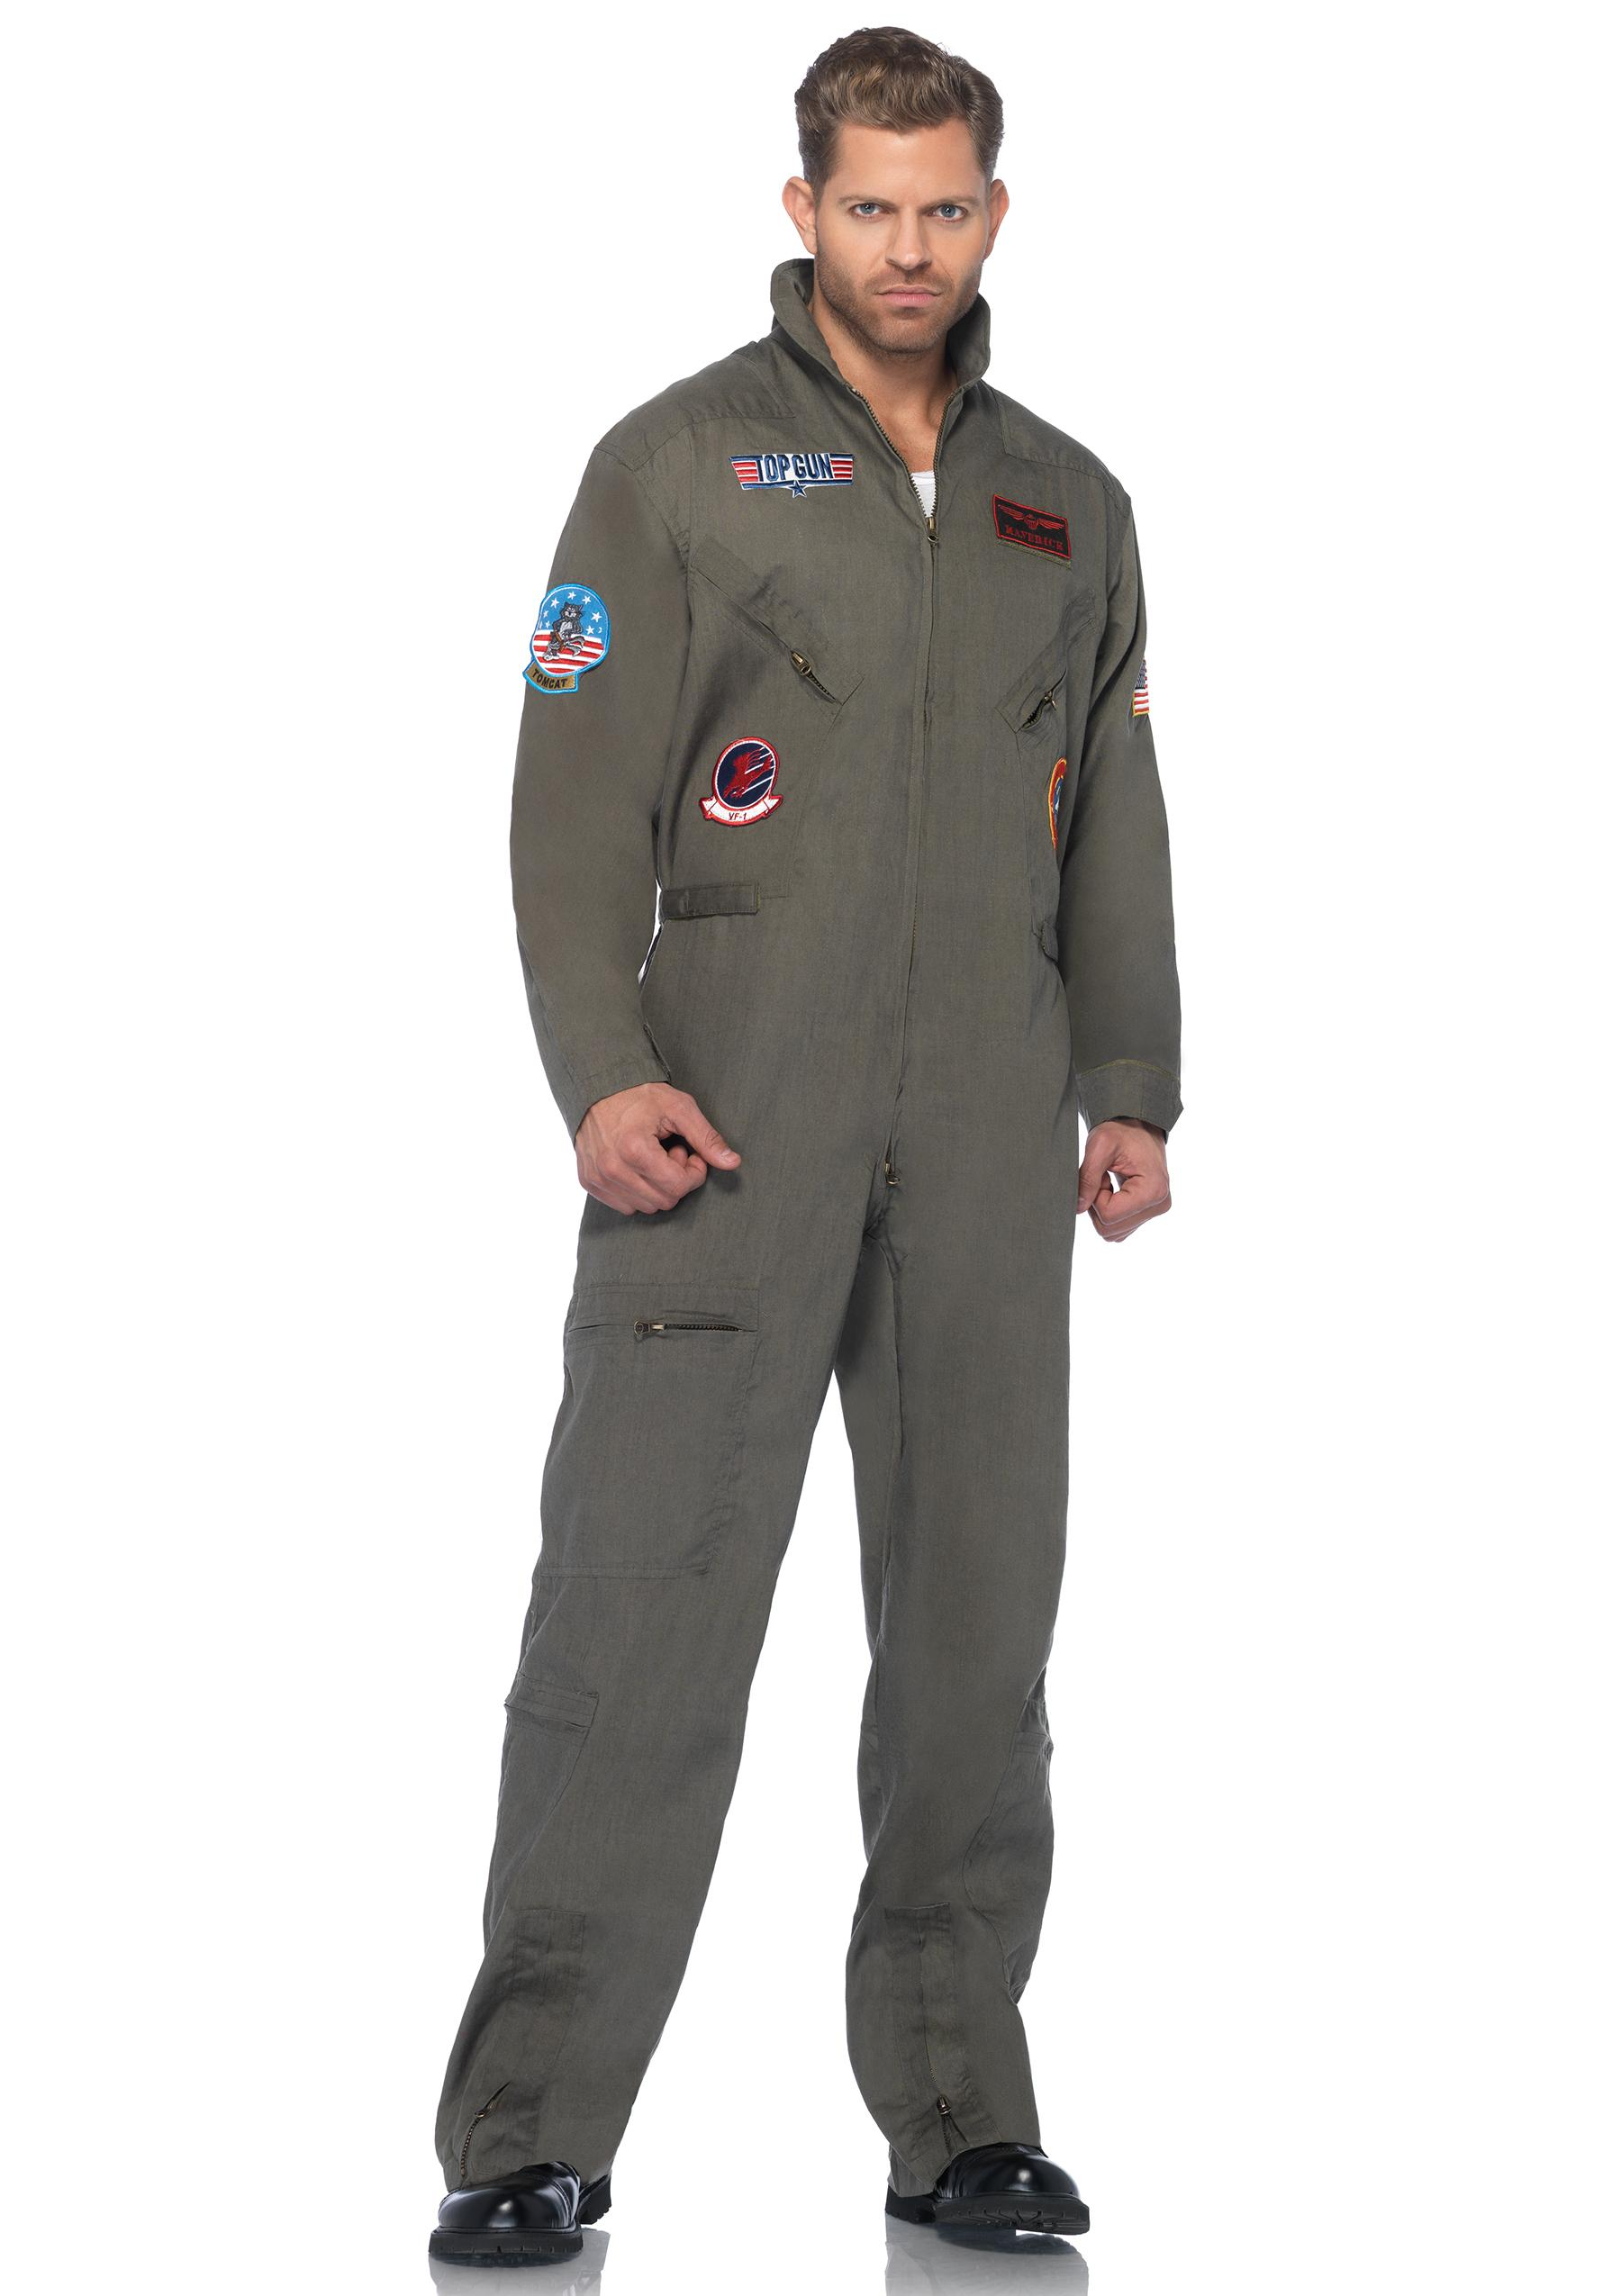 amazoncom top gun mens flight suit adult costume clothing amazon com top gun mens flight suit adult costume clothing - Amazon Halloween Costumes Men